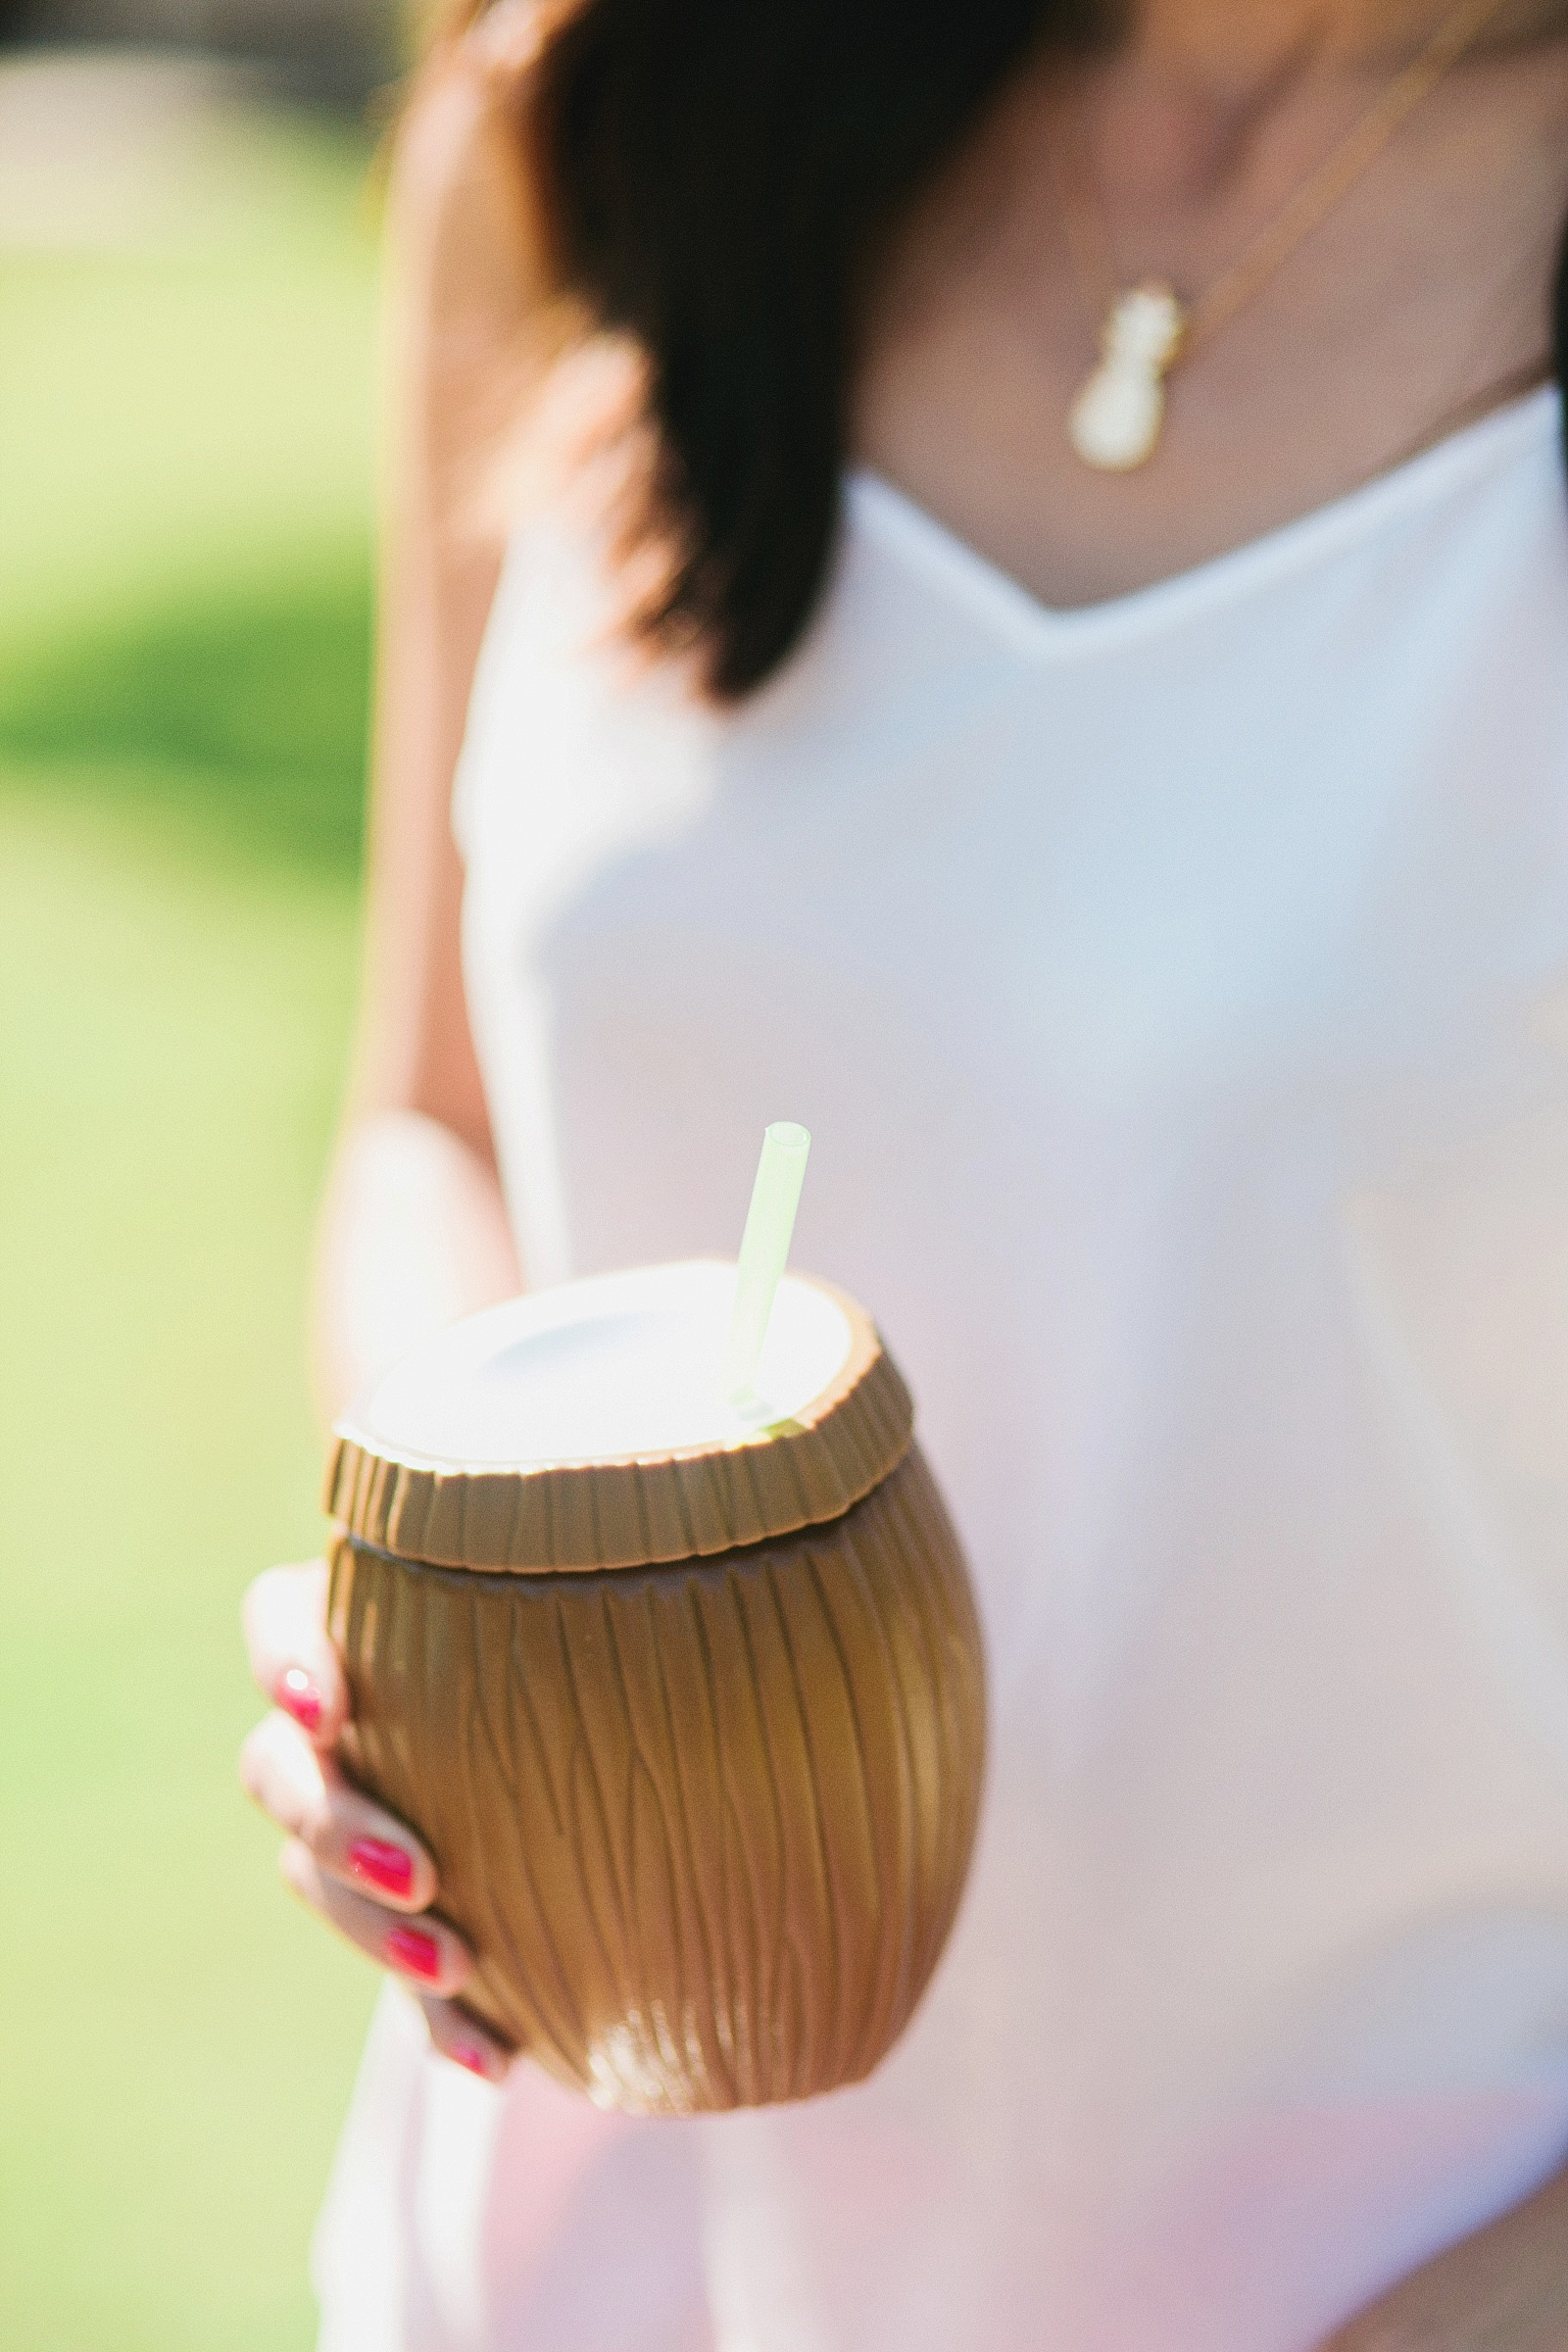 coconut chiller drink cup